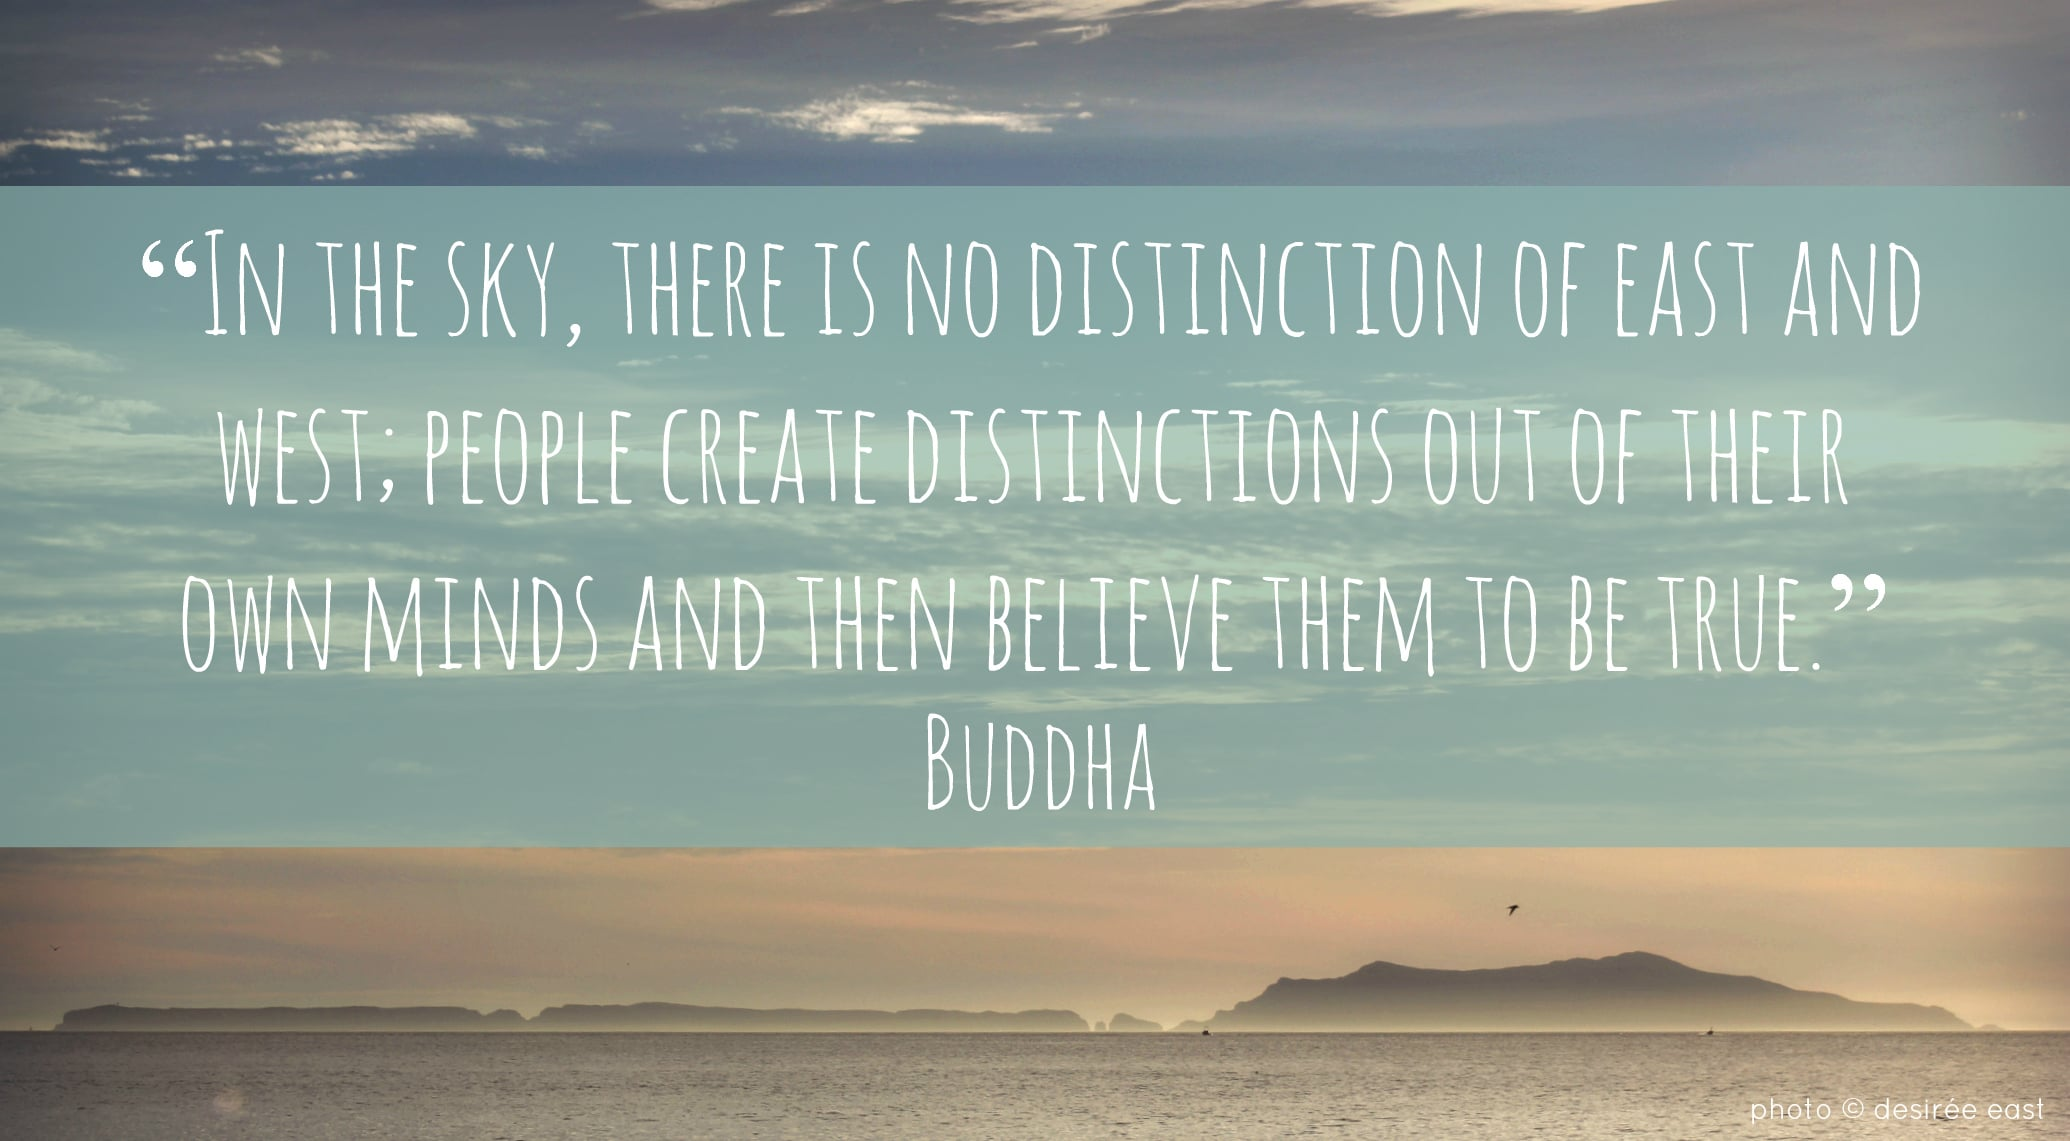 weekly photo challenge - perspective with buddha quote - 'on the horizon' by desiree east